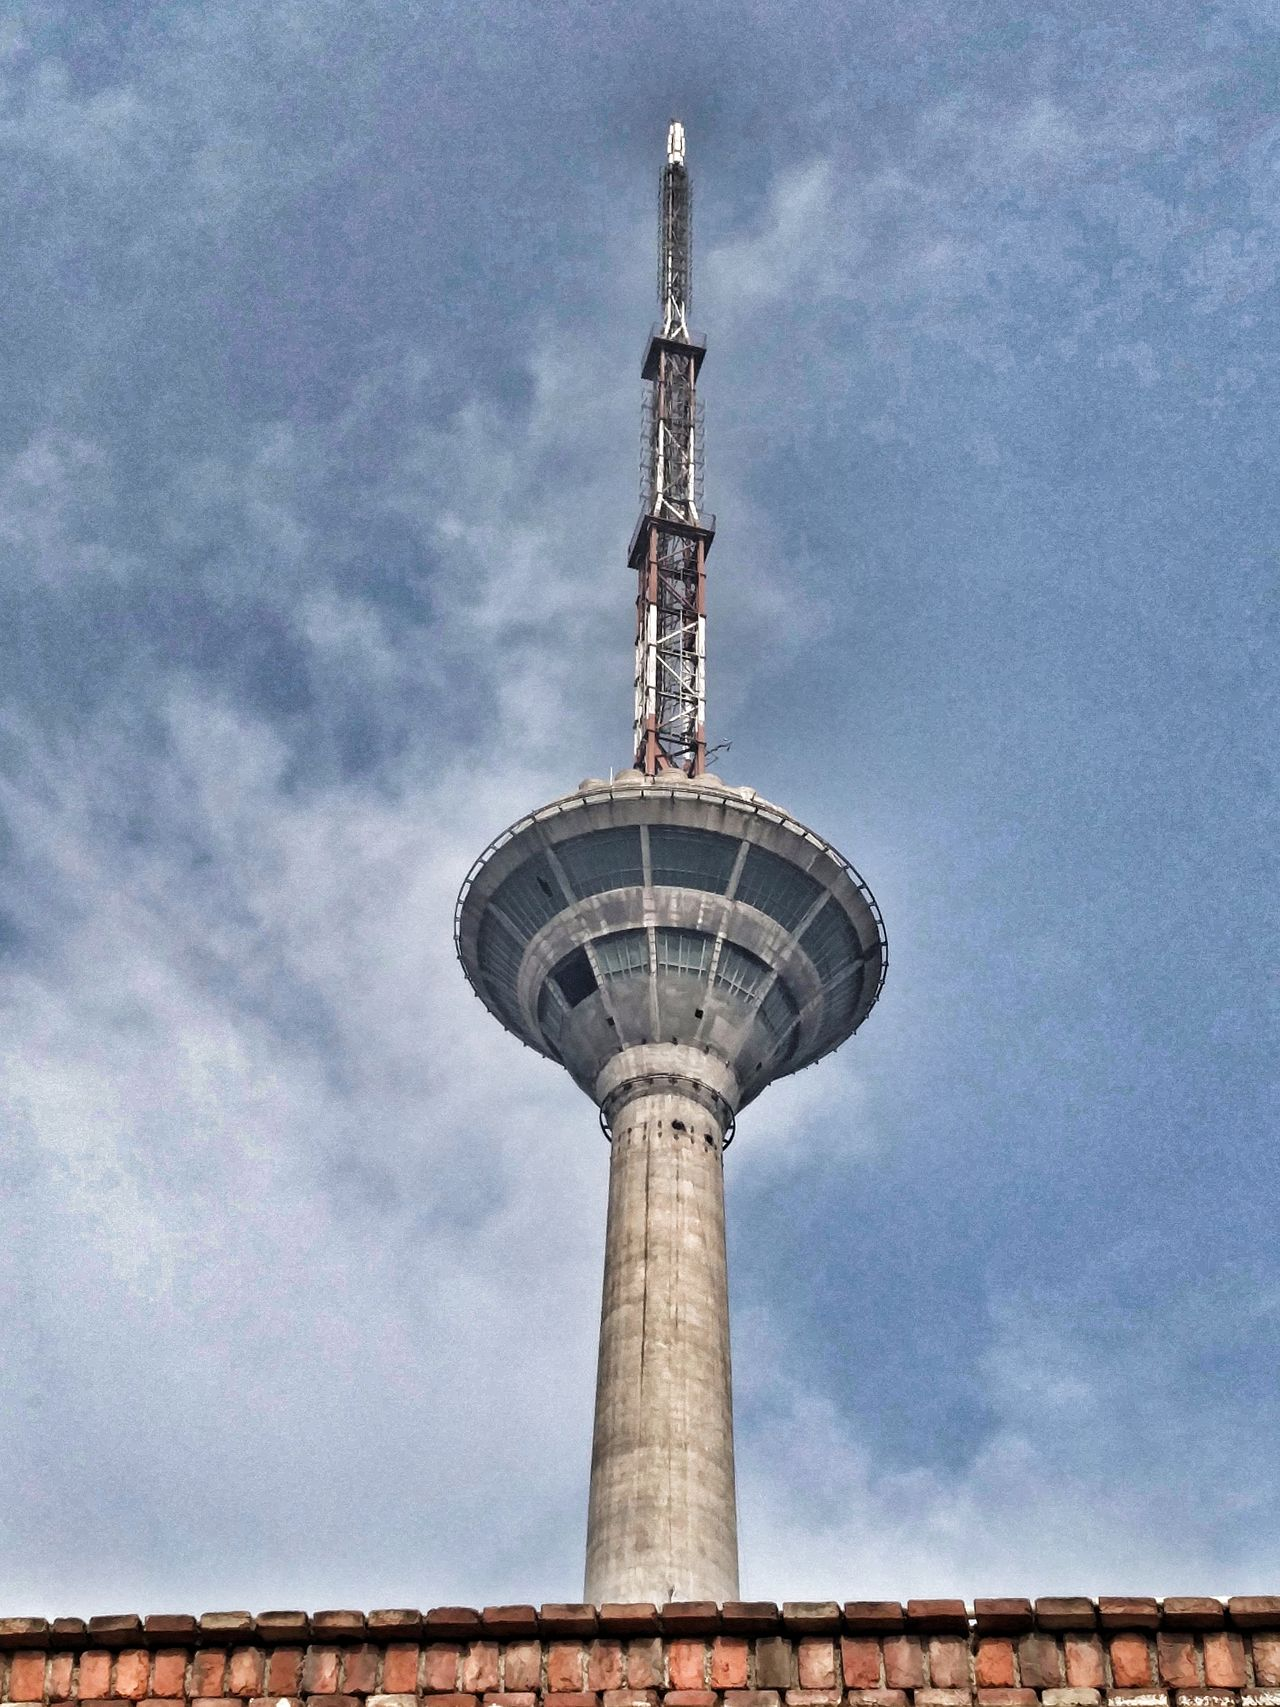 Tower Sky Communication Architecture Global Communications Outdoors Broadcasting Low Angle View City TV Tower Eyeemphotography Eye4photography  Amateur Photographer Oneplus2 Photography India Built Structure Towers And Sky